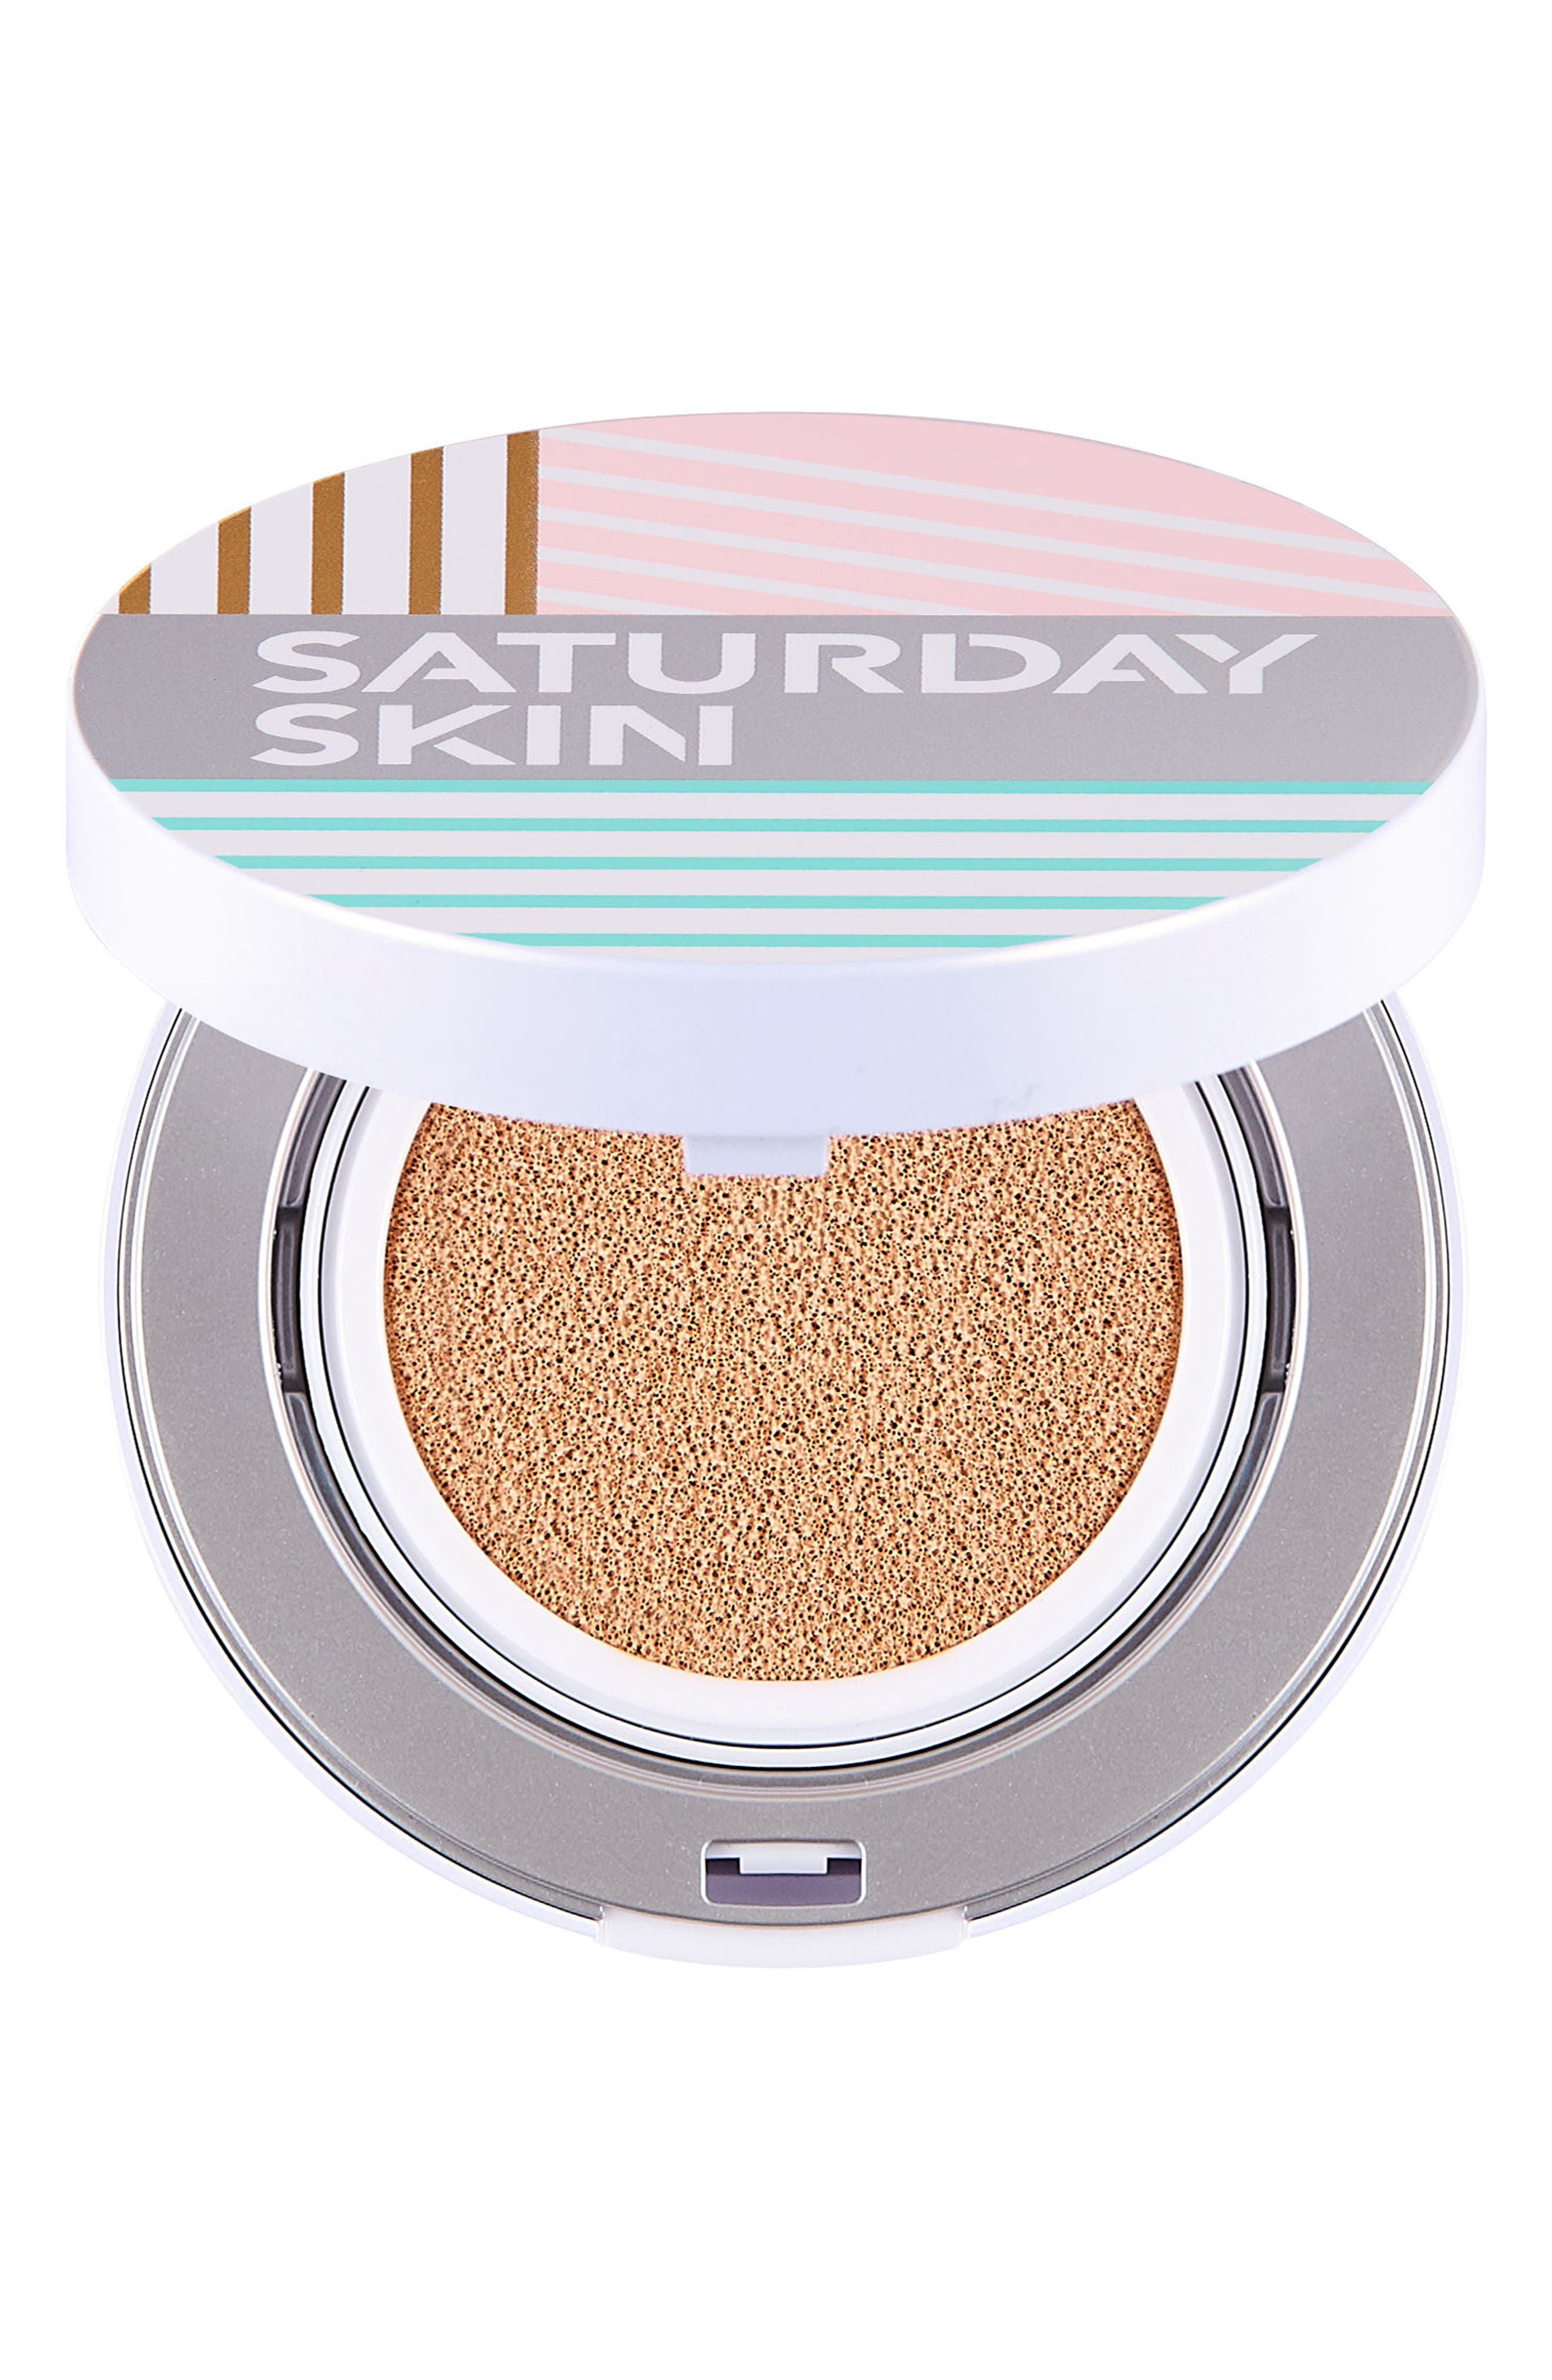 Alternate Image 4  - Saturday Skin All Aglow Sunscreen Perfection Cushion Compact SPF 50